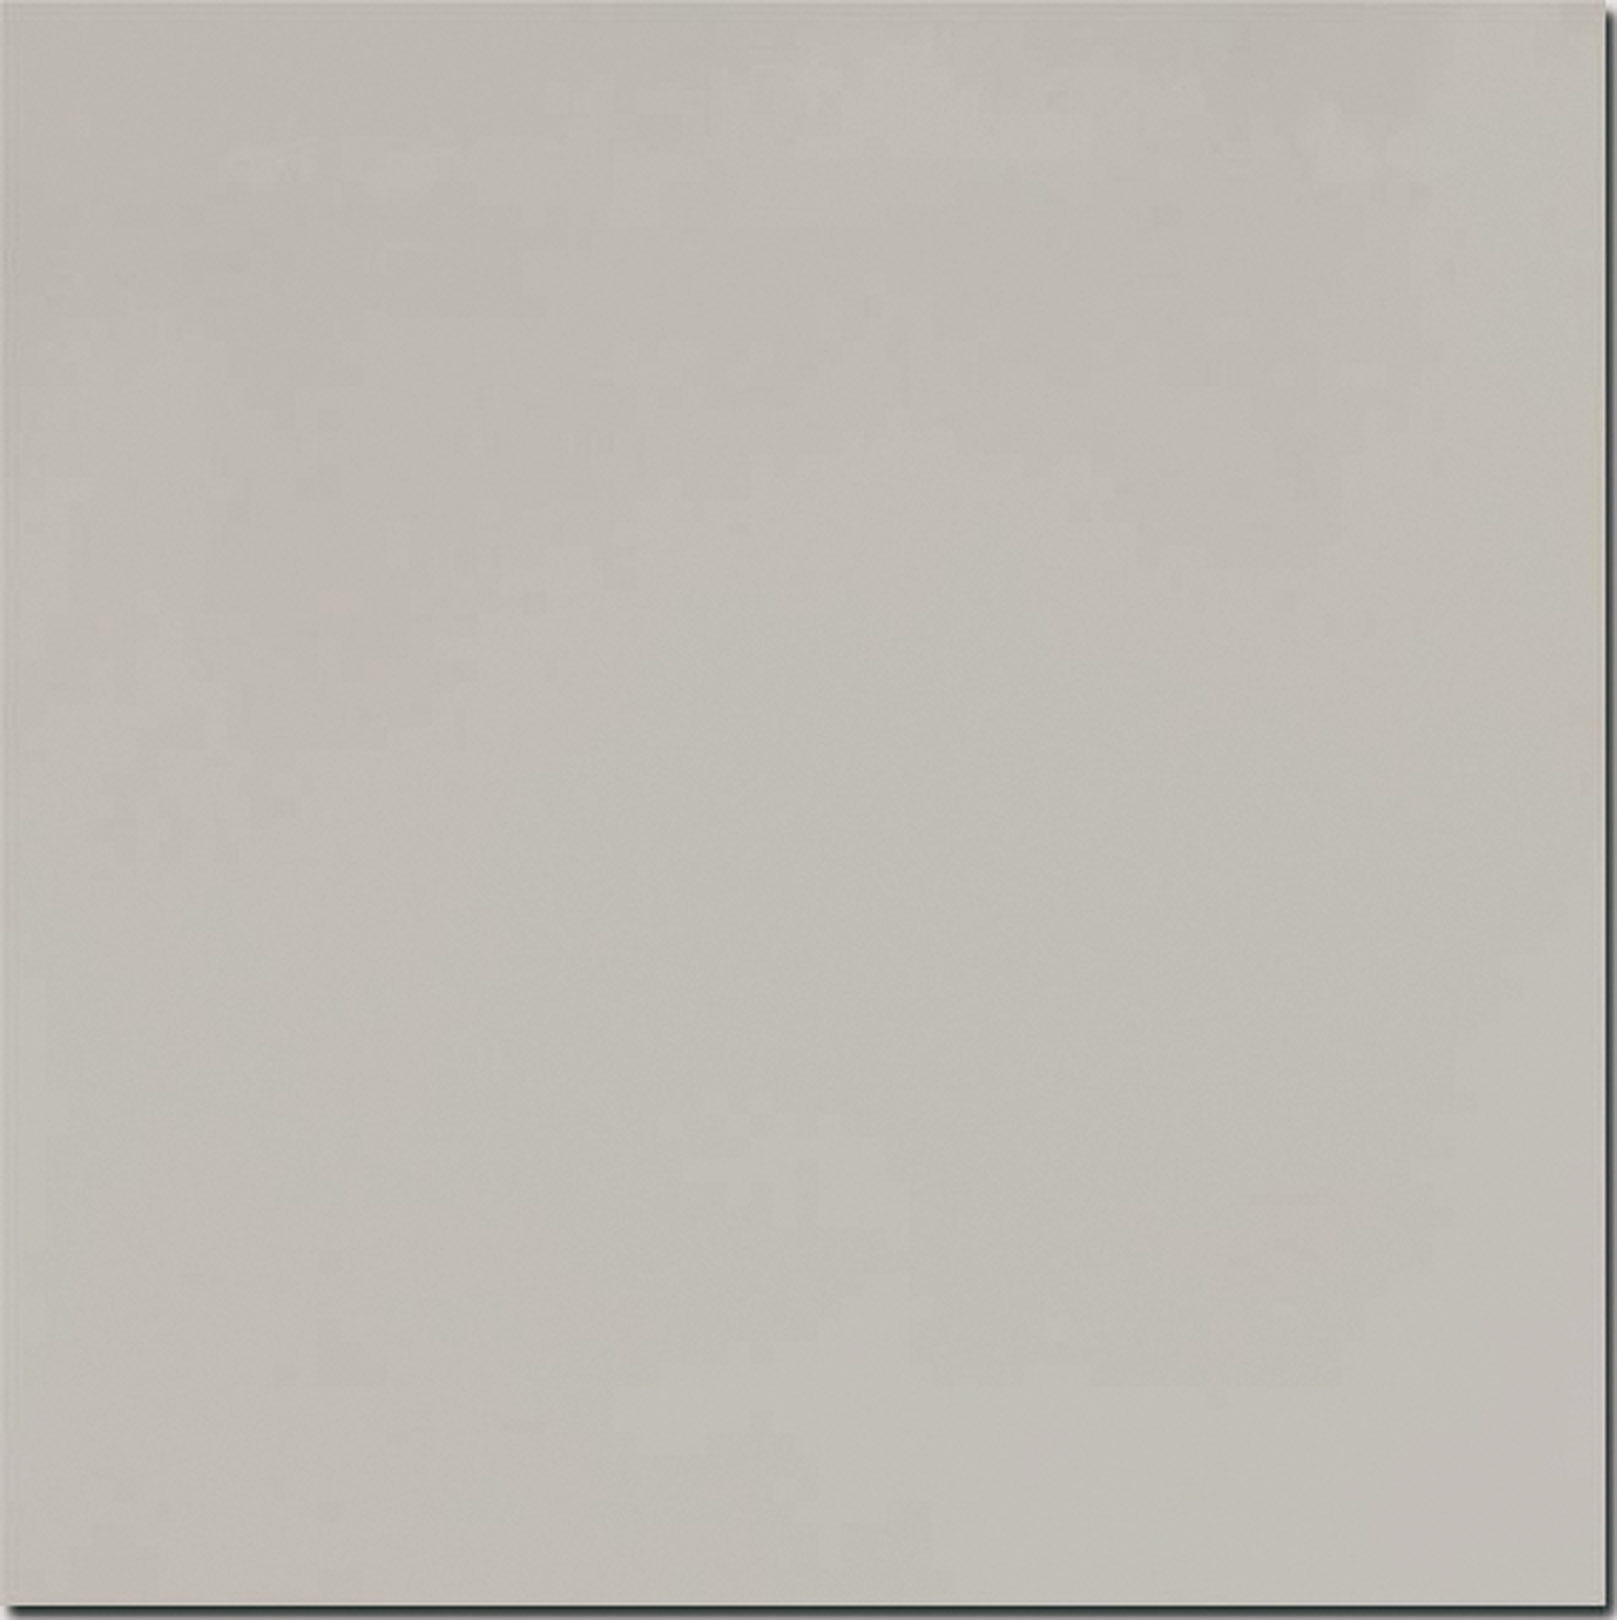 Light Grey - Natural porcelain tile from our Uno Tile Collection